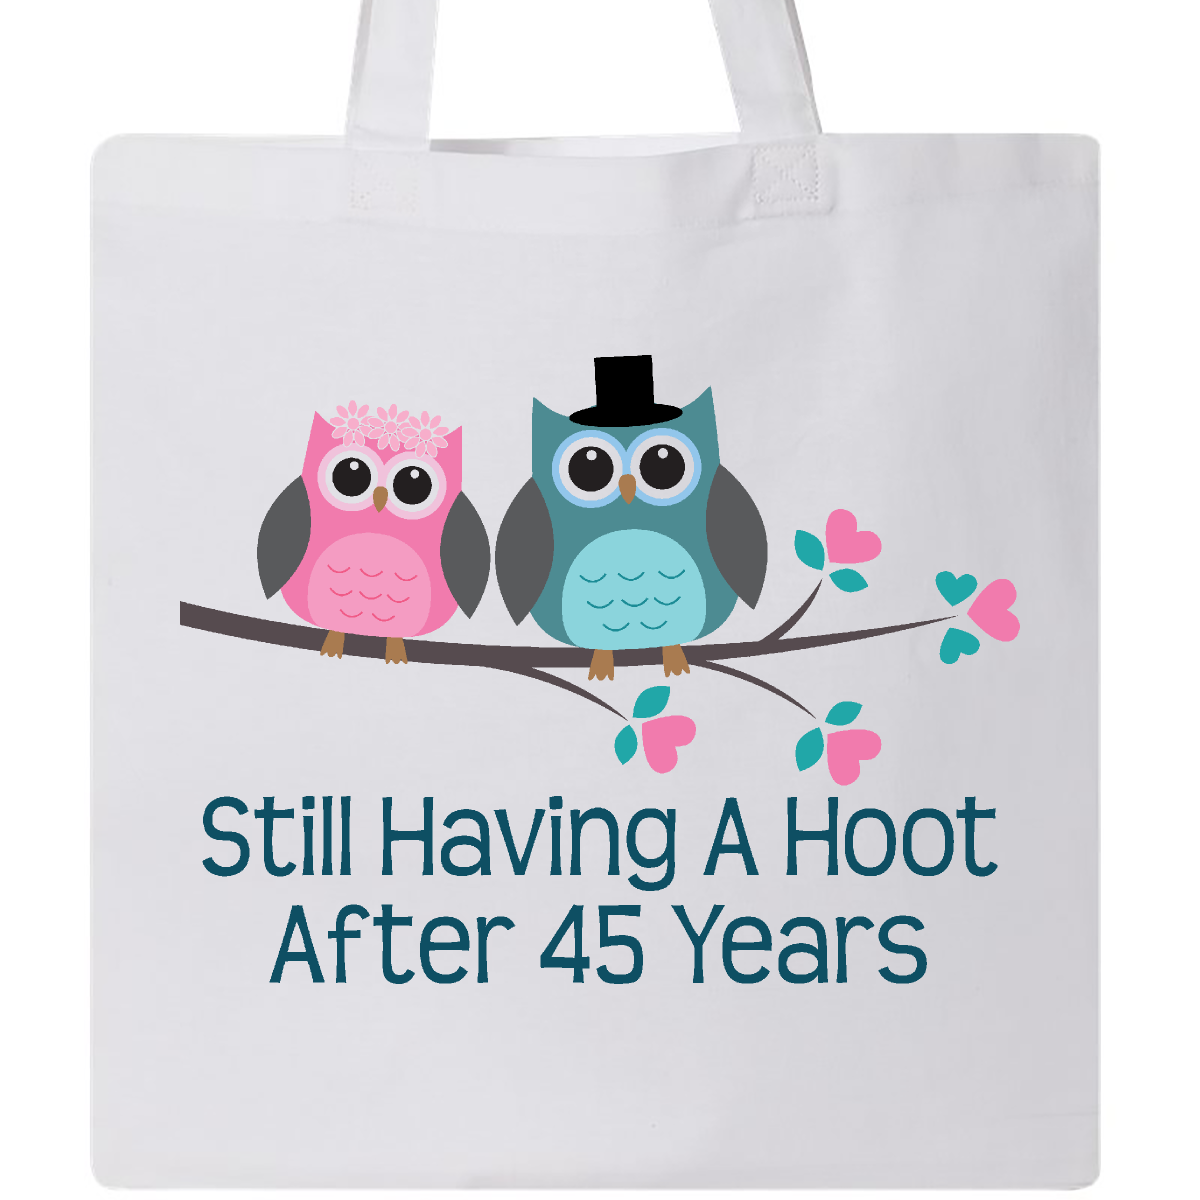 Gift For 45th Wedding Anniversary Hoot Tote Bag White $9